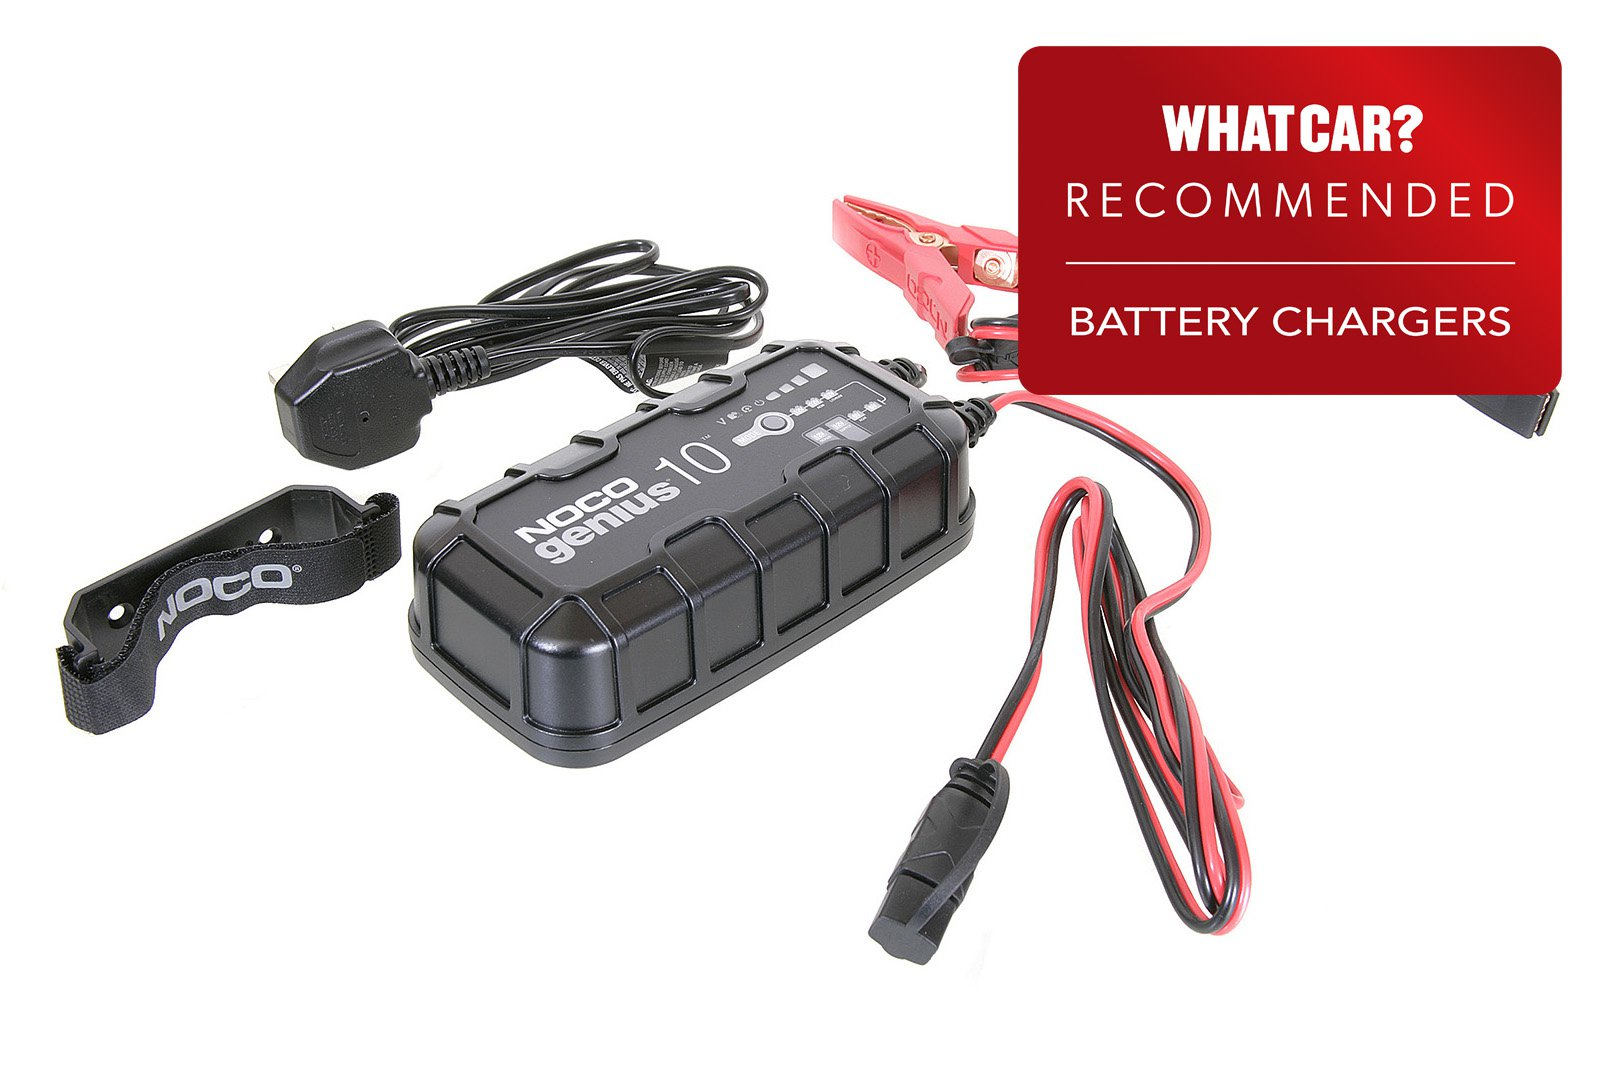 Smart Battery Chargers 2021 - NOCO Genius10UK -RECOMMENDED